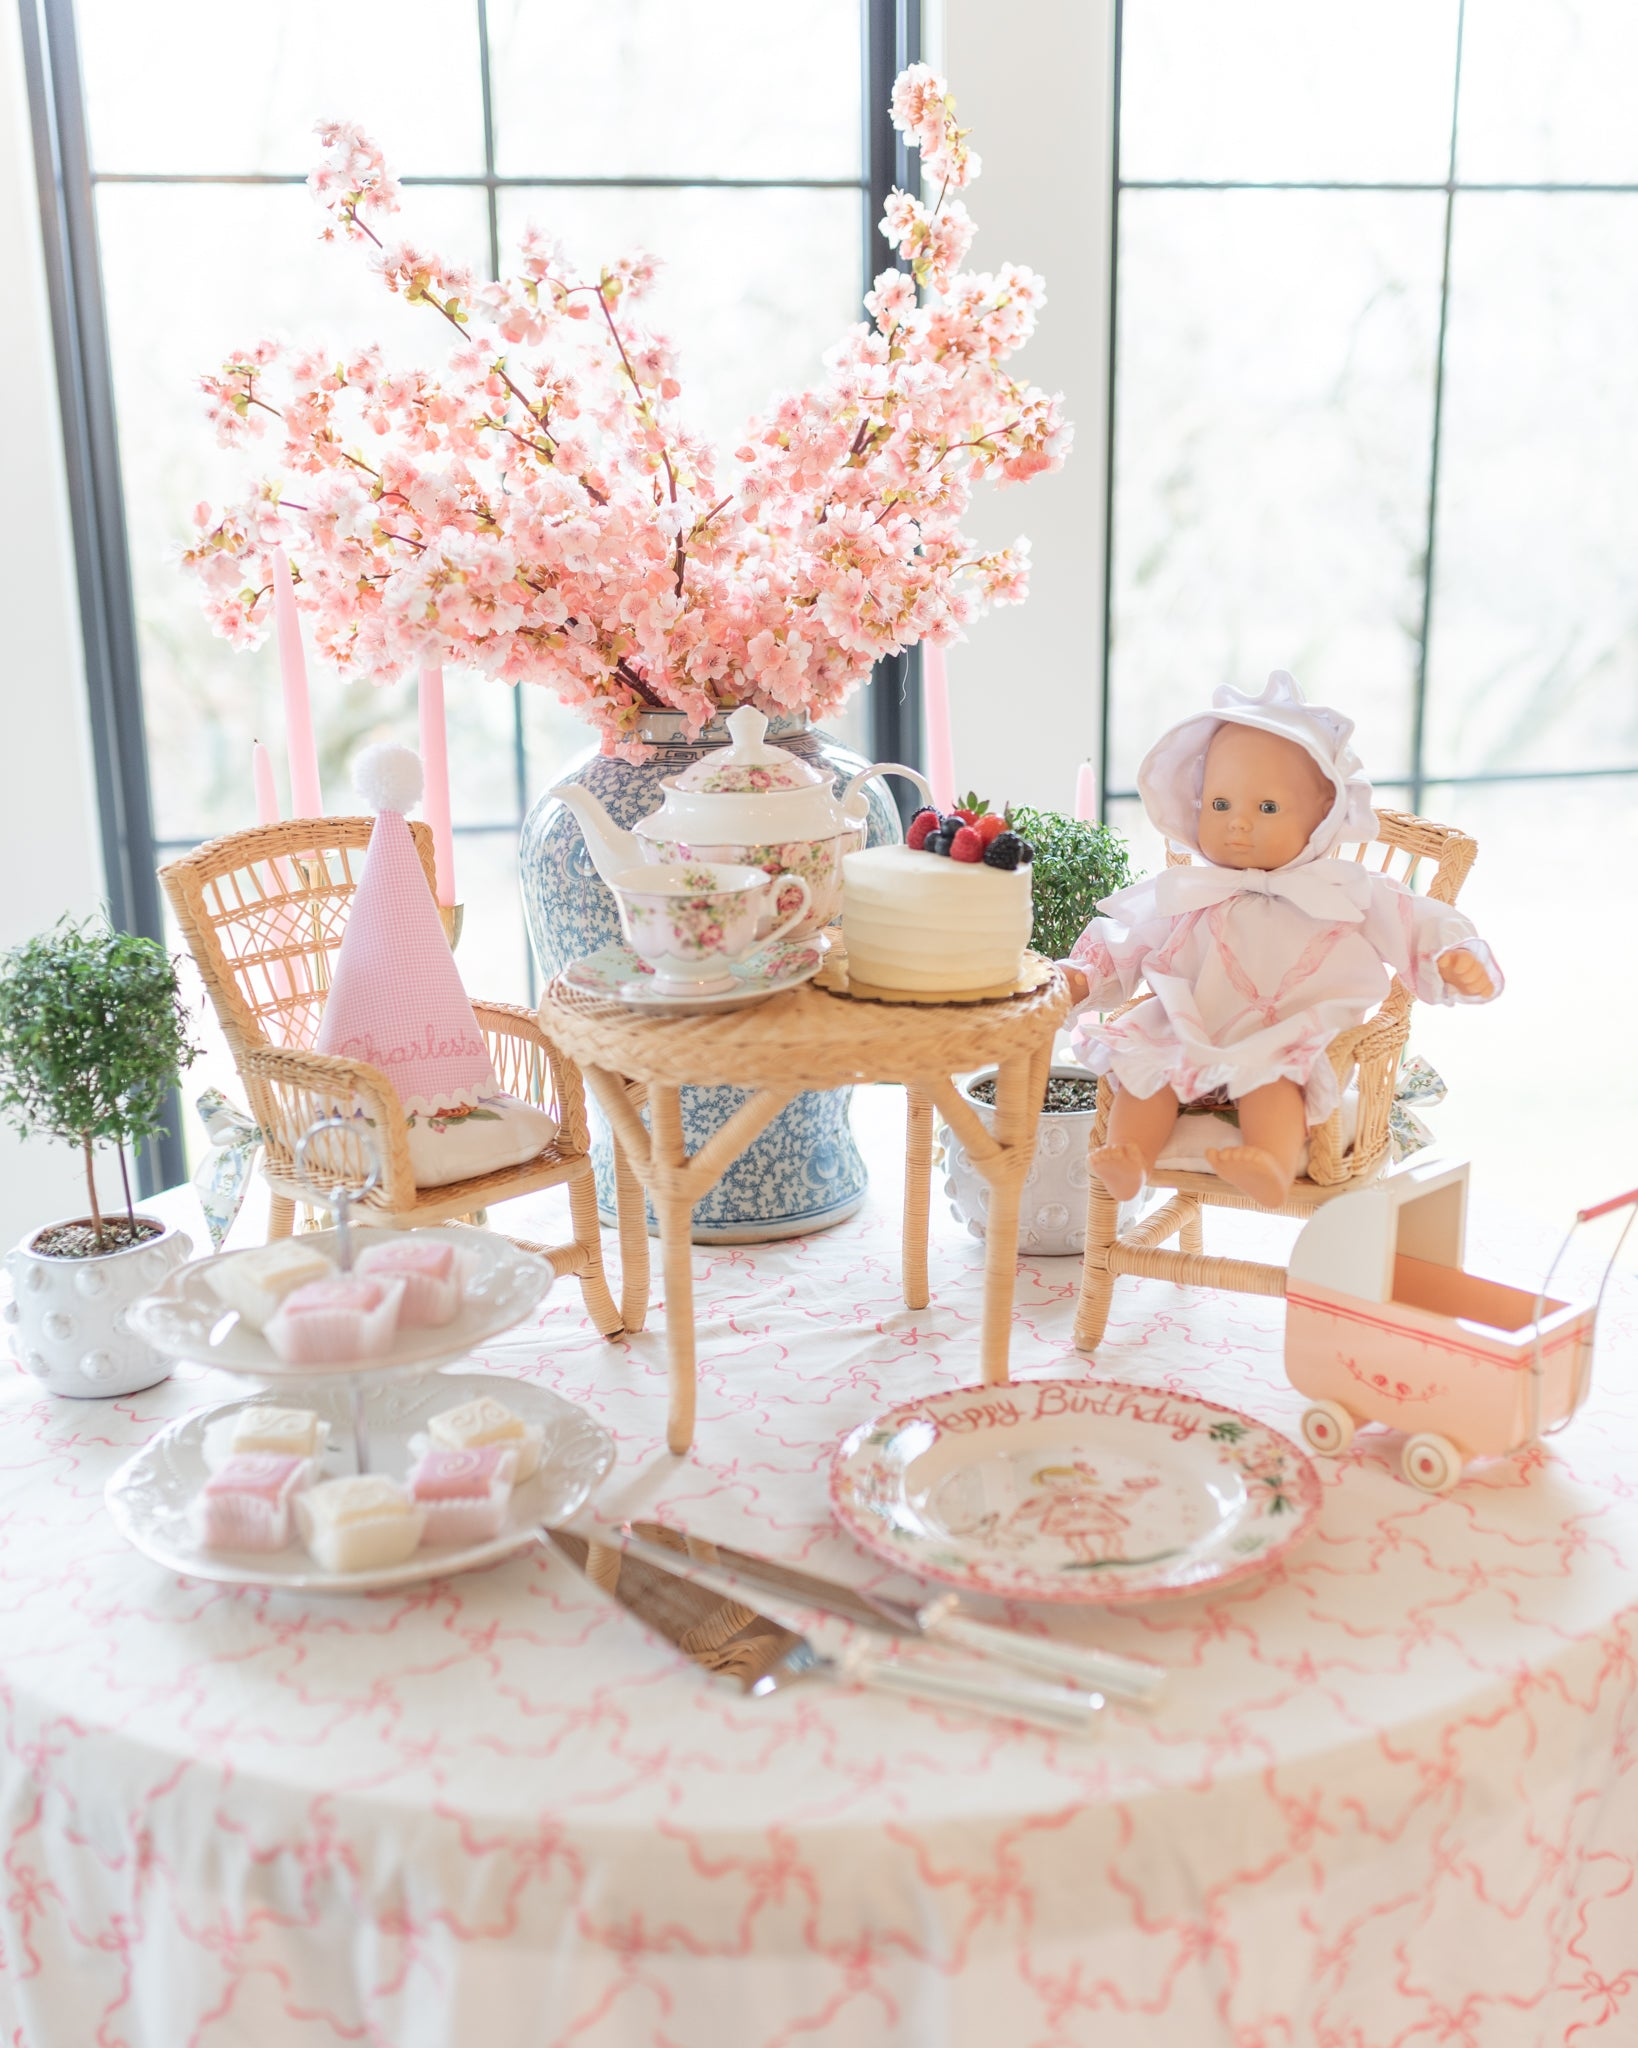 Tea party children's birthday inspiration - The Brooke Brooke Charlotte sy Dimby